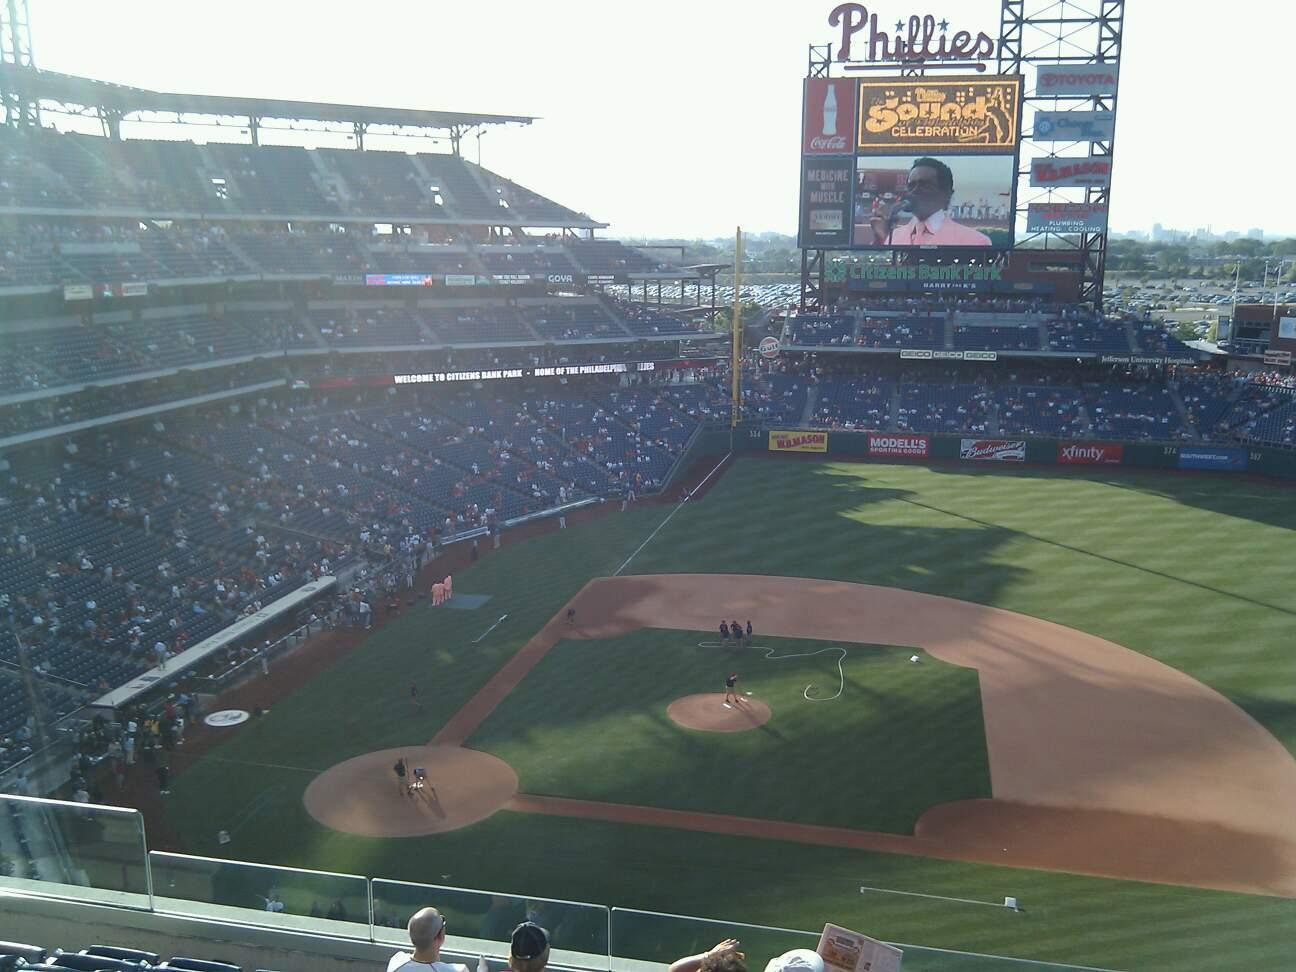 Citizens Bank Park Section 315 Row 8 Seat 15